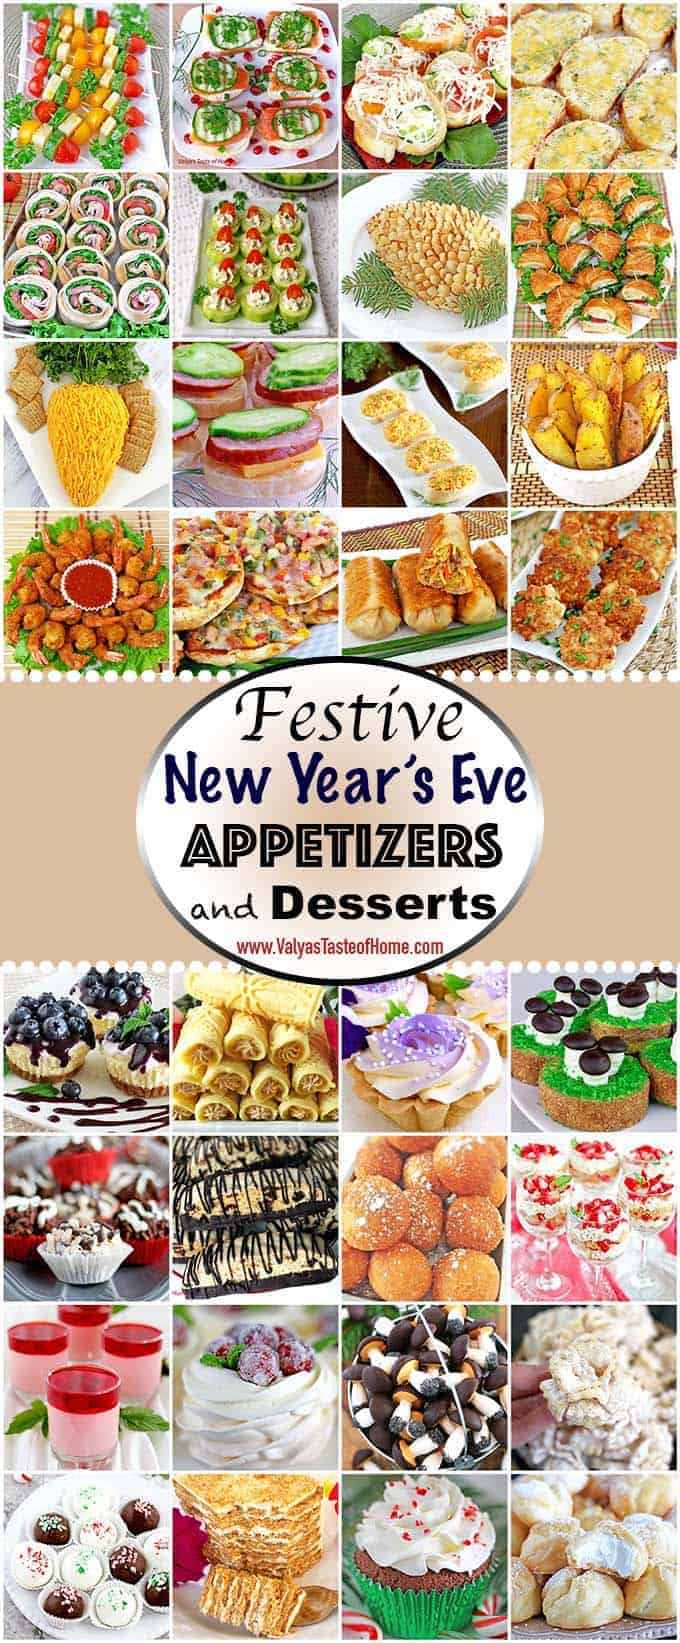 In today's Festive New Year's Appetizers and Desserts post, you will find a variety of different appetizers and single-serving dessert recipes pieced together to help ease your New Year's Eve party prep anxiety.